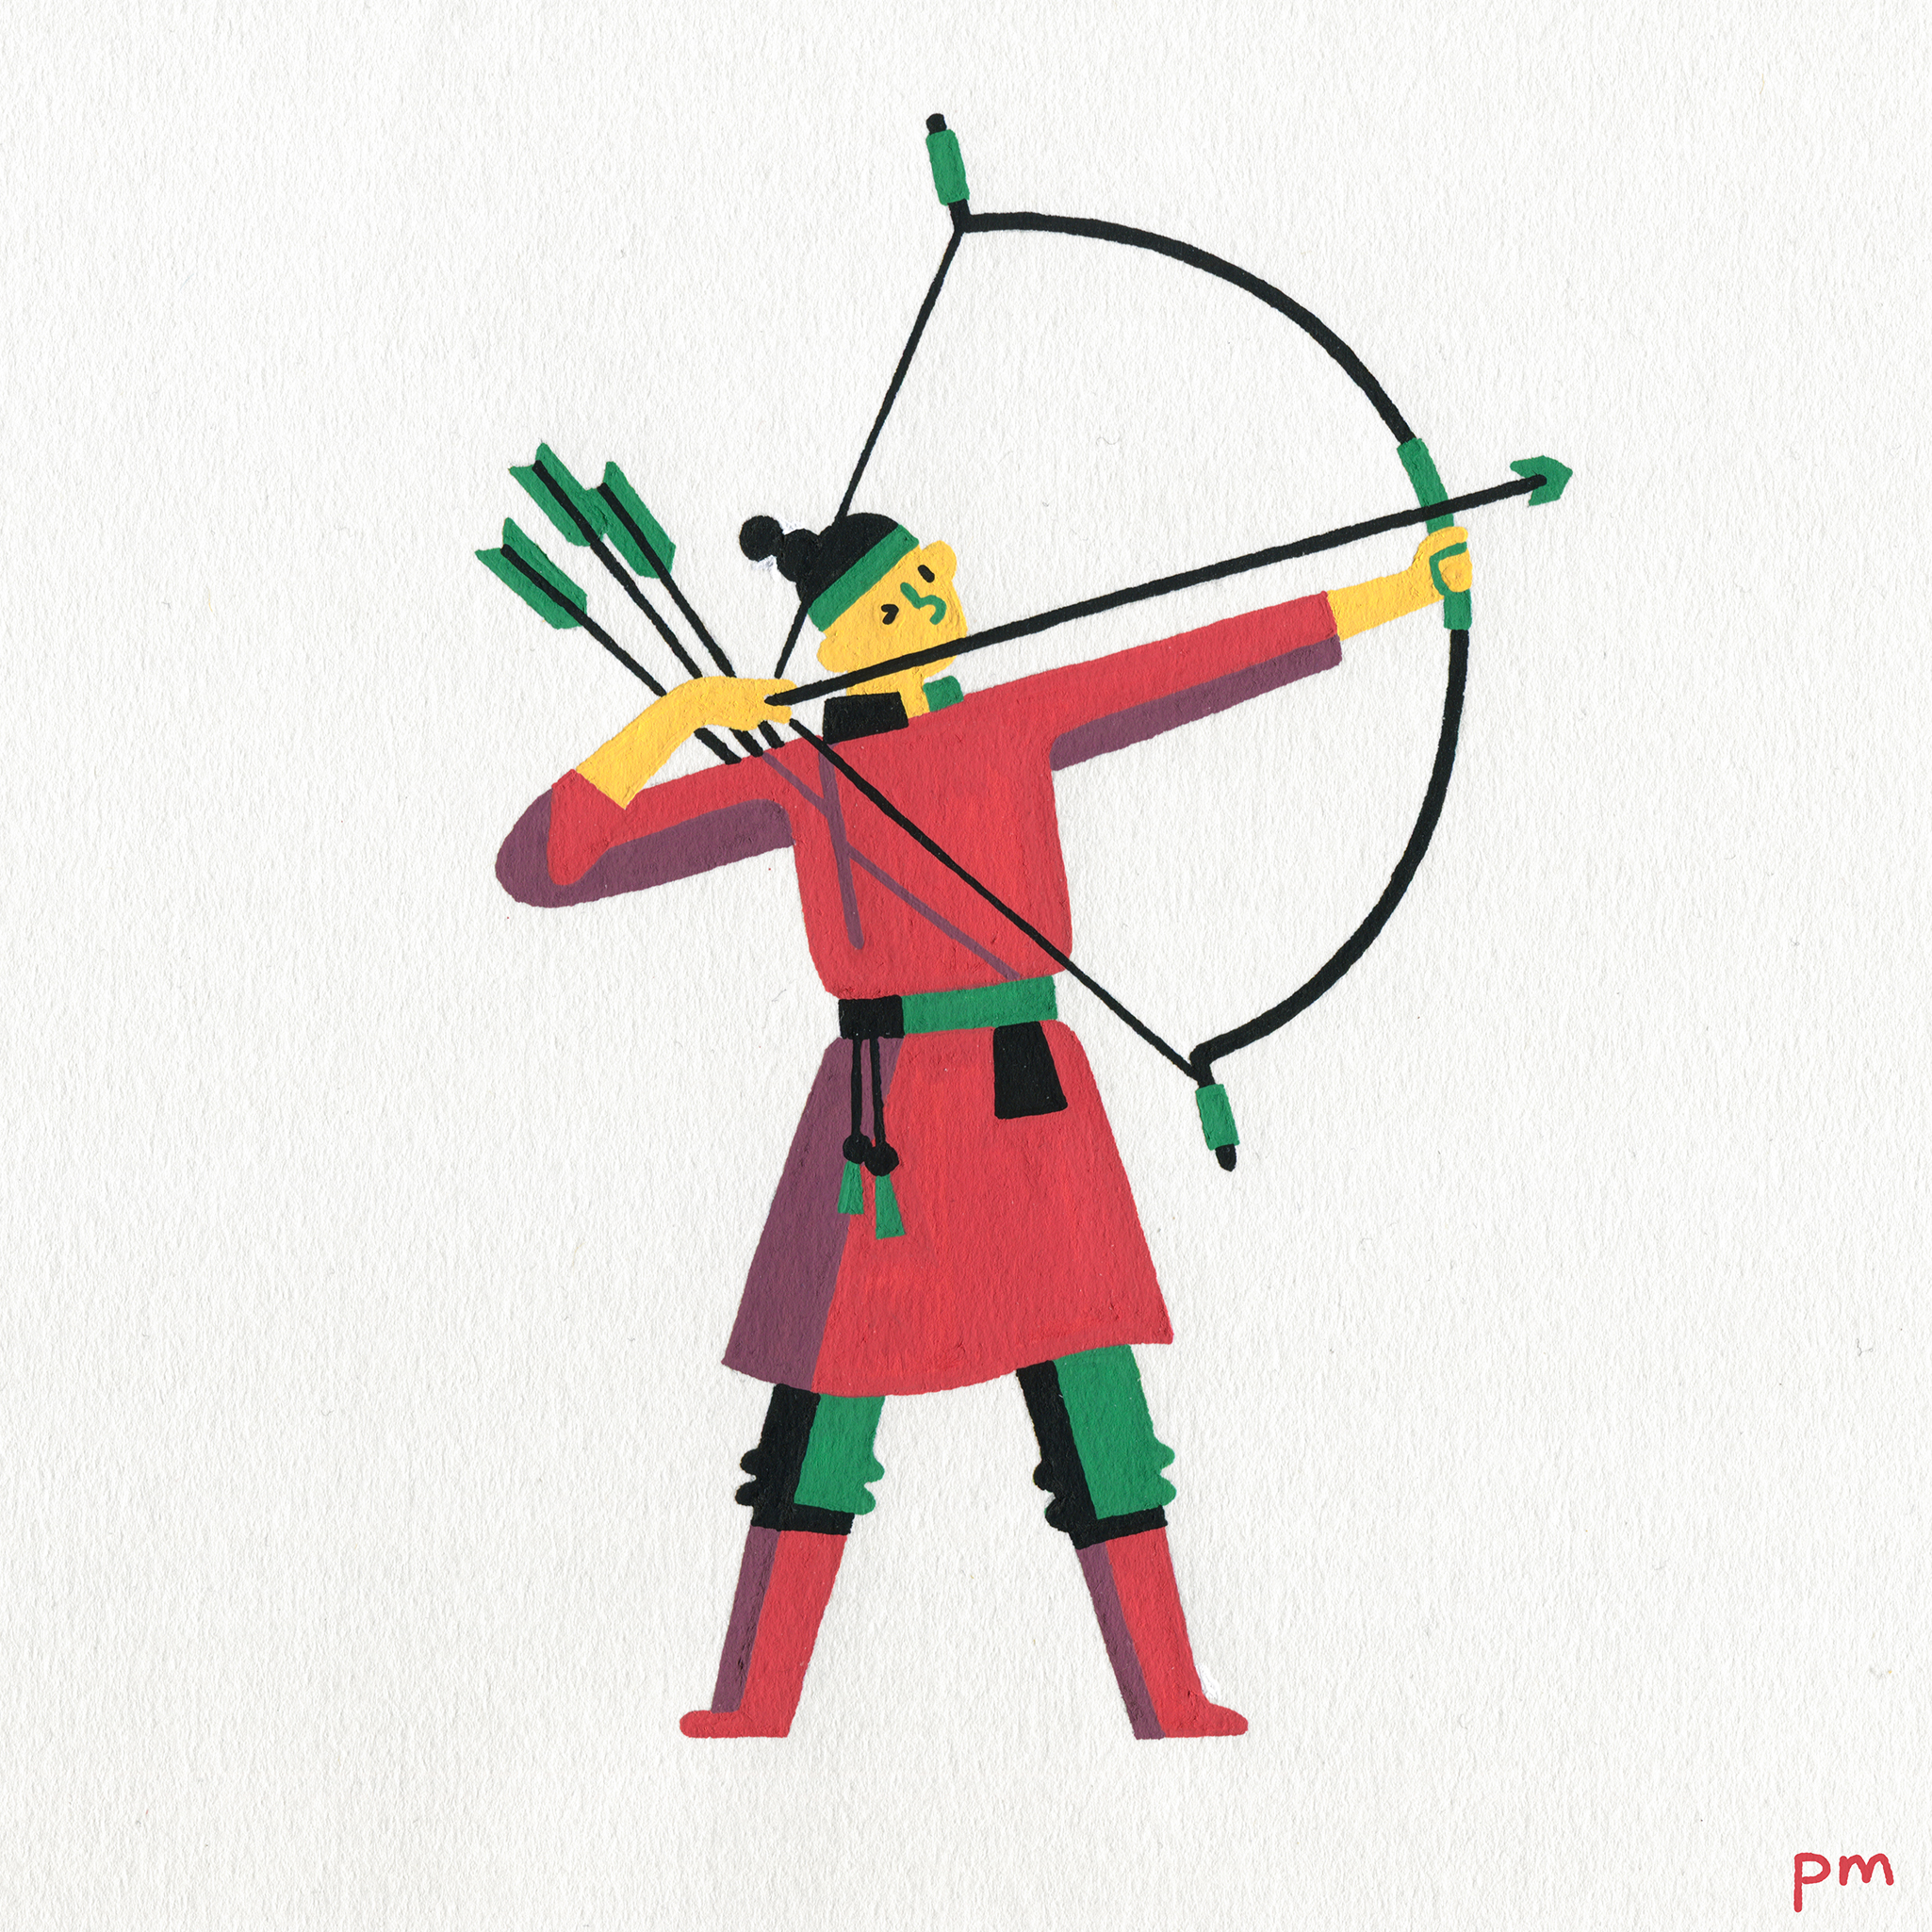 Here is an illustration of a Mongolian archer character for my illustrated sports series.